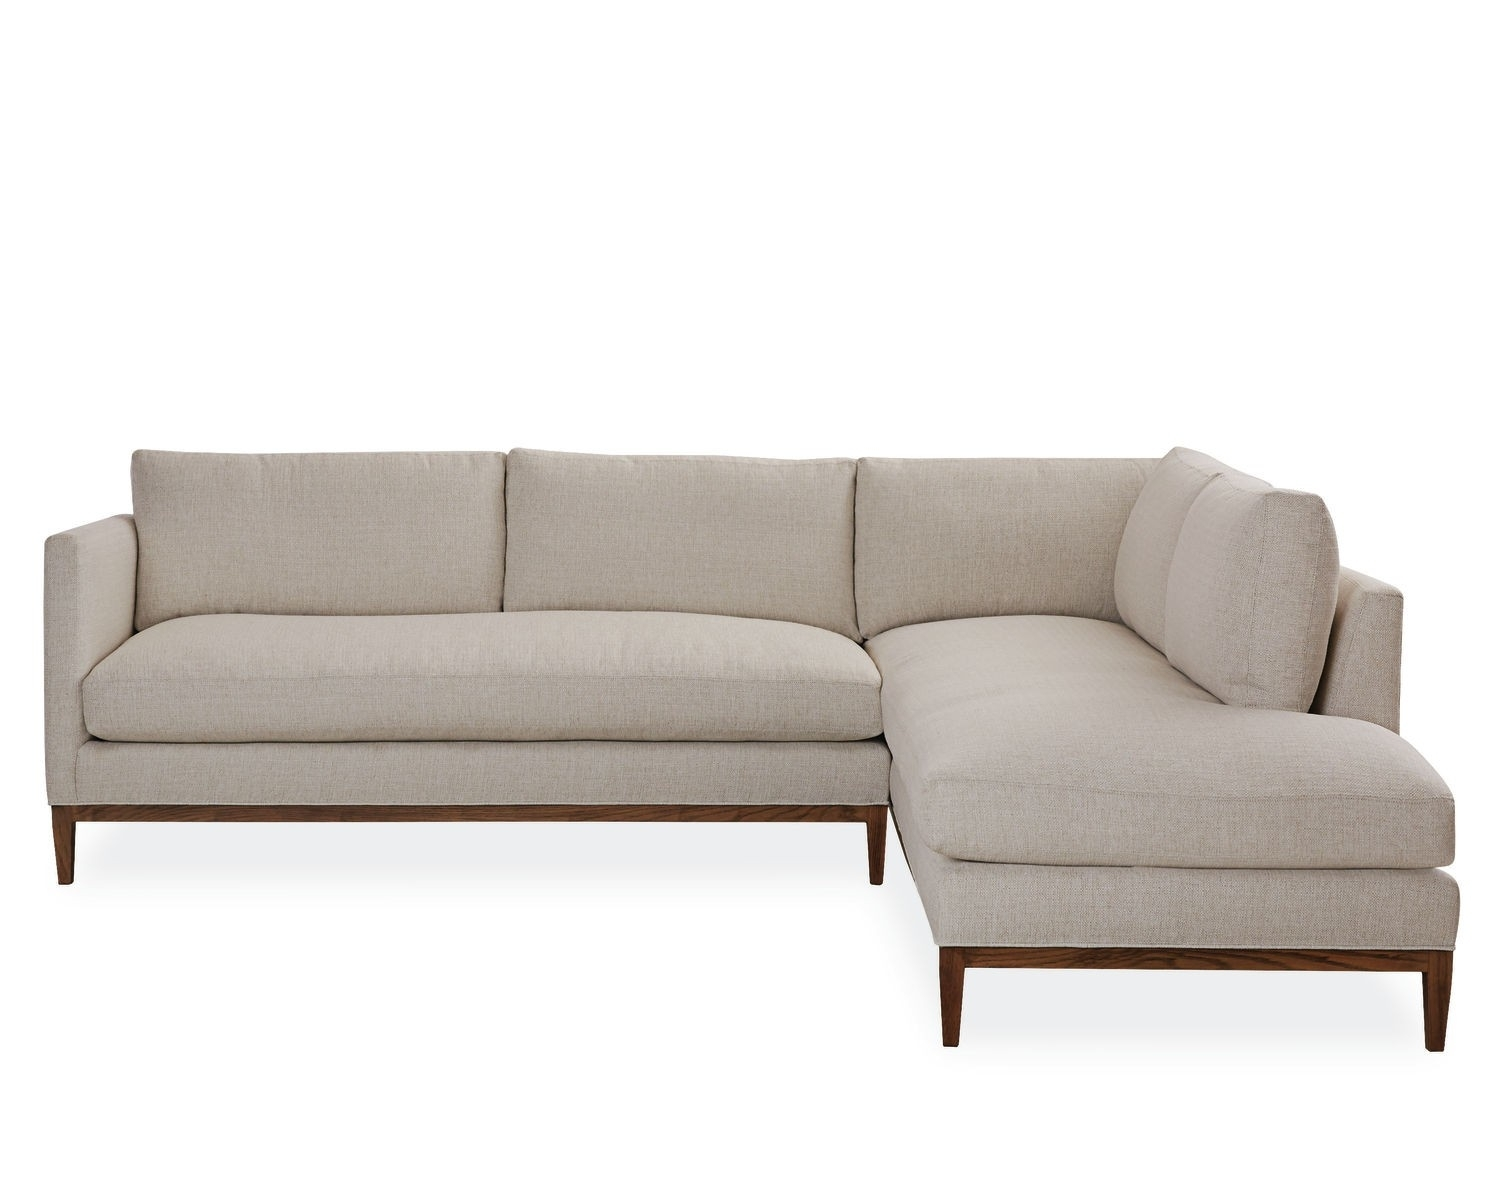 American Furniture | Palm Springs Chaise Sectional | Lee Industries Intended For Lee Industries Sectional Sofas (View 2 of 10)